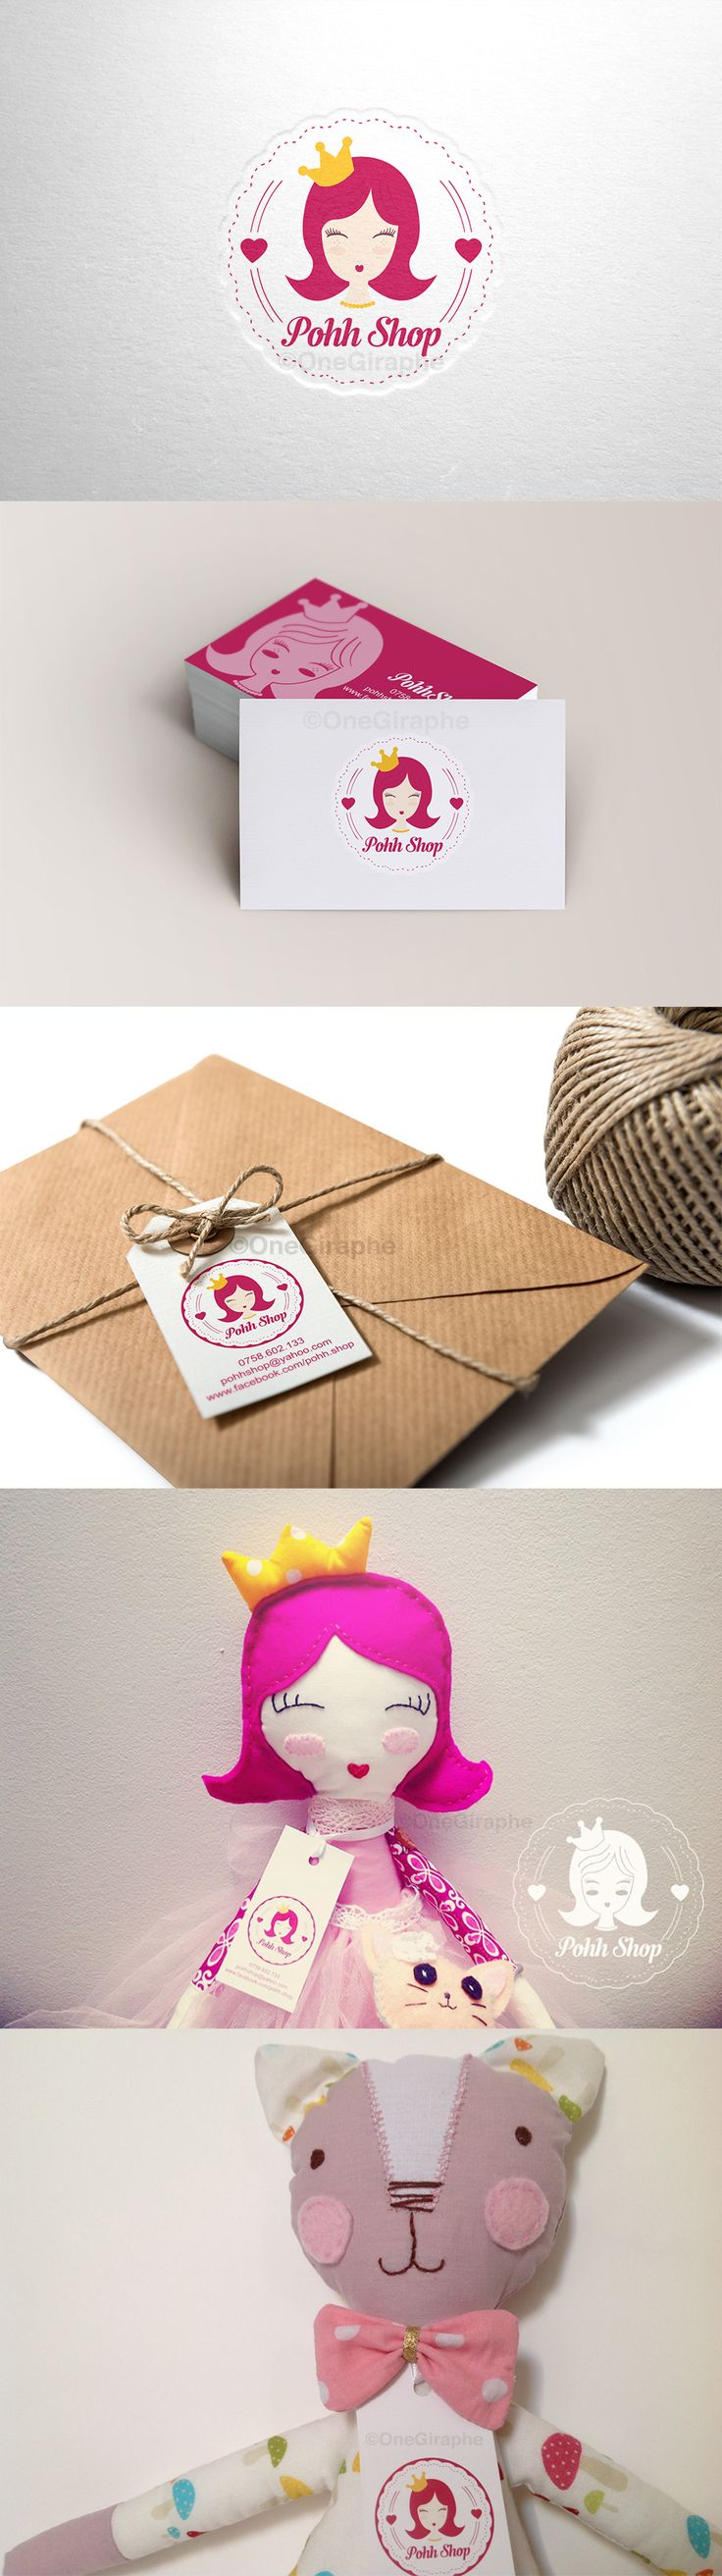 #handmade #doll #princess #brand #branding #logo #baby #children #kids #cute #sweet #pink #logodesign #behance #brandstack #dribbble #rugdoll #fabricdoll #fashion Brand for Pohh Shop : Logo , business cards, tag, stickers, watermark  https://www.facebook.com/pohh.shop